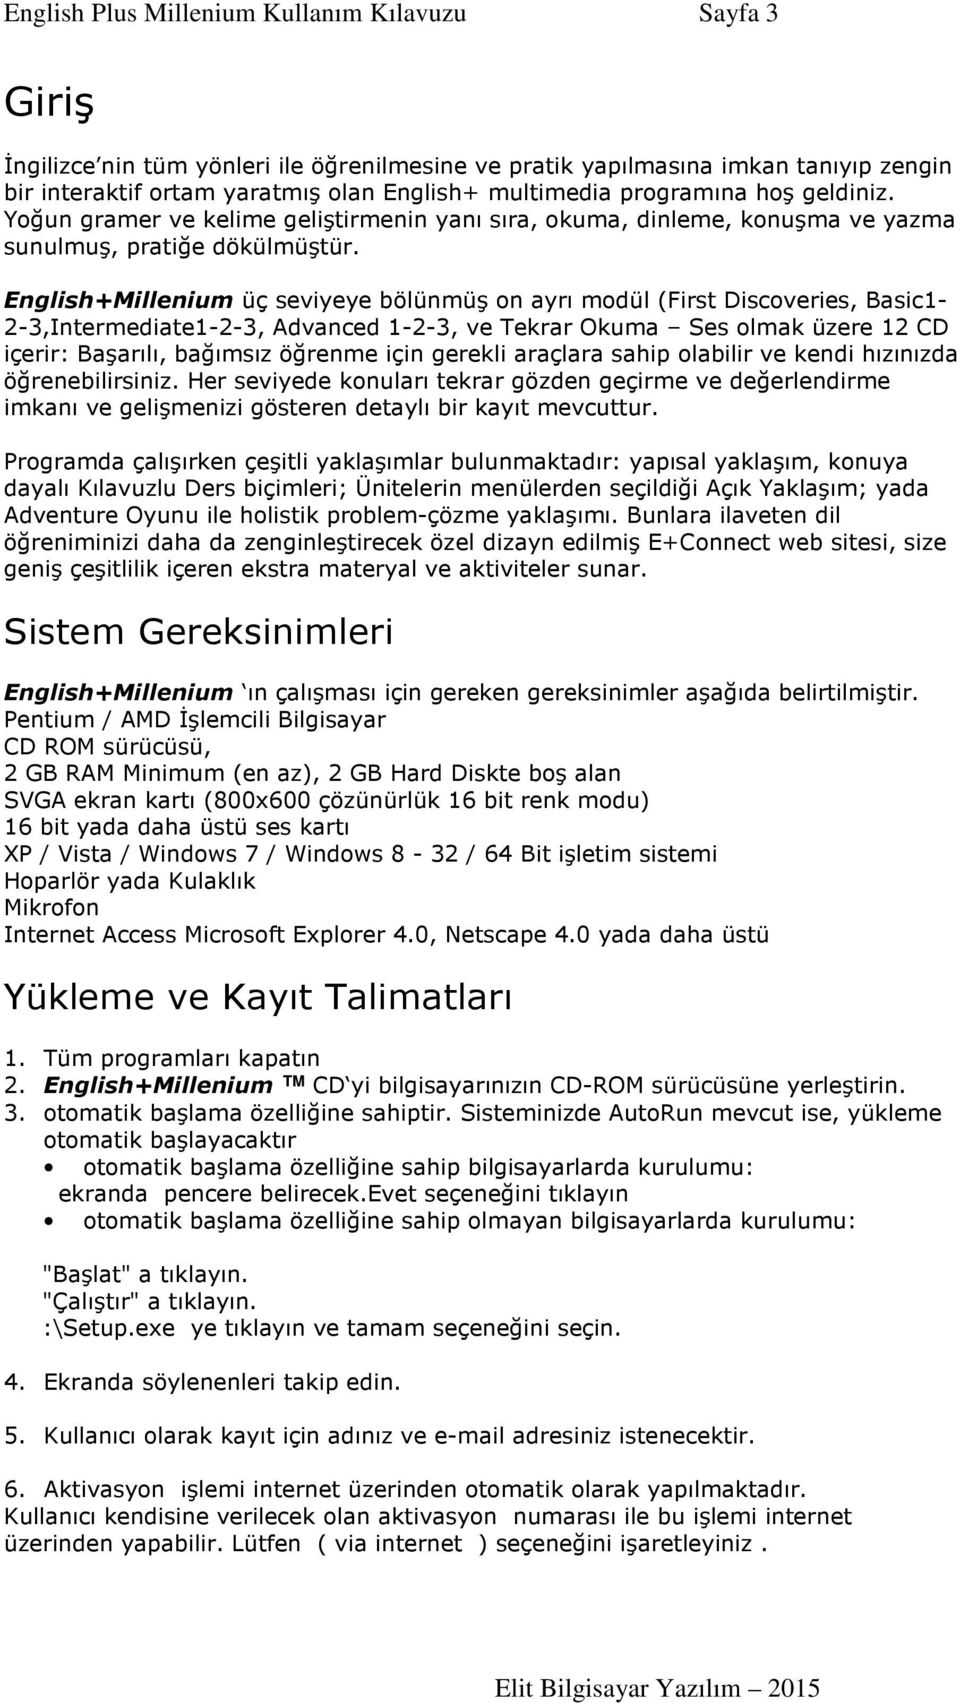 English+Millenium üç seviyeye bölünmüş on ayrı modül (First Discoveries, Basic1-2-3,Intermediate1-2-3, Advanced 1-2-3, ve Tekrar Okuma Ses olmak üzere 12 CD içerir: Başarılı, bağımsız öğrenme için